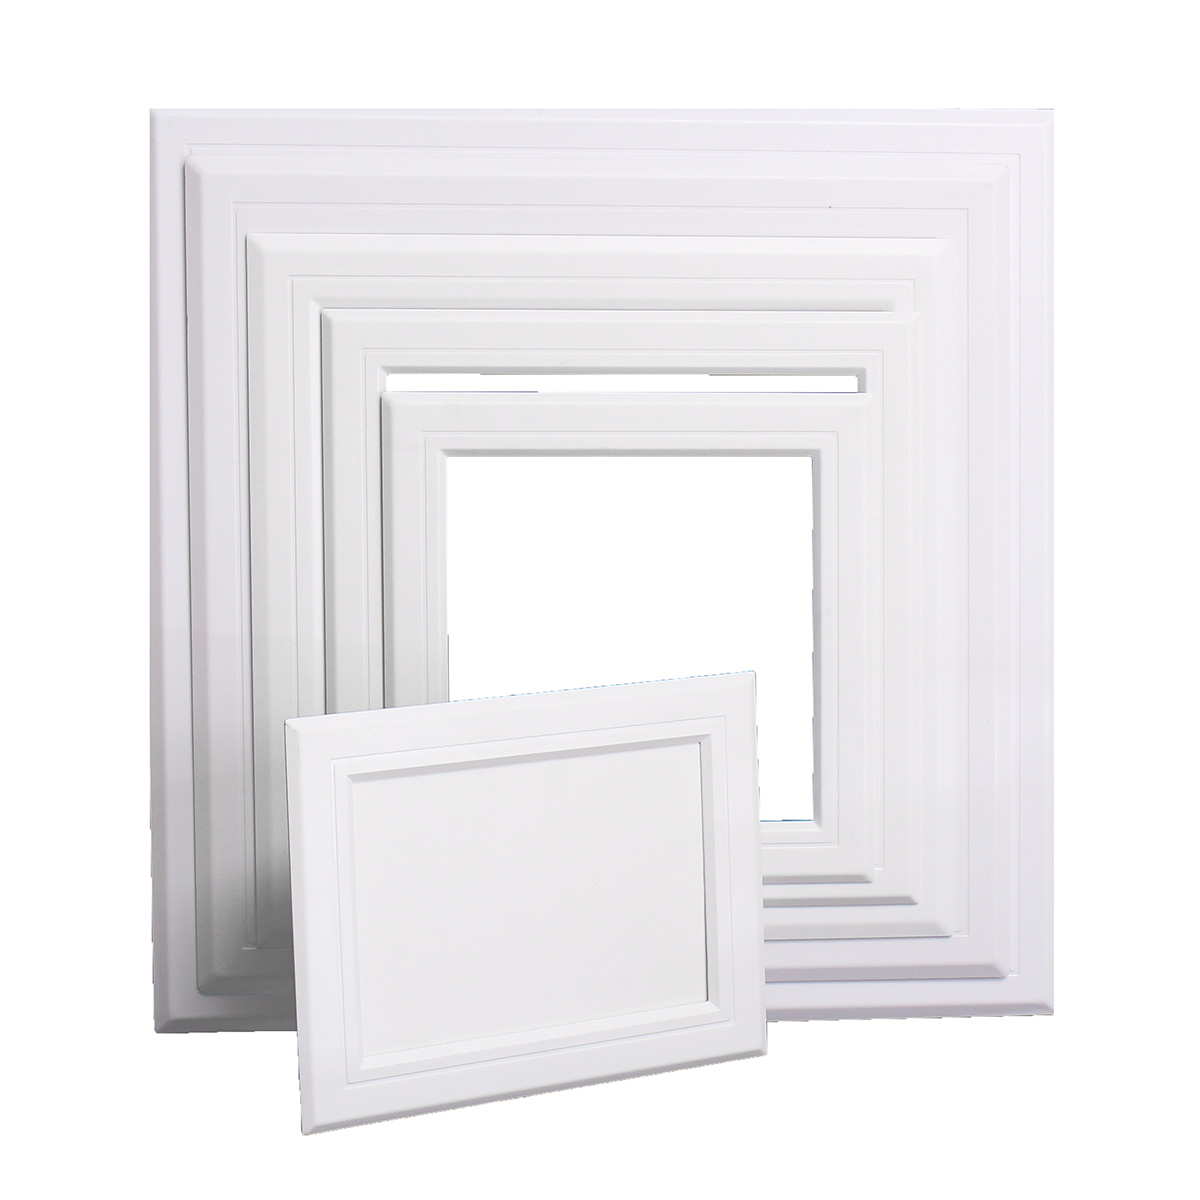 hight resolution of abs wall ceiling access panel 7 sizes white inspection plumbing wiring door revision hatch cover in core vents from home improvement on aliexpress com